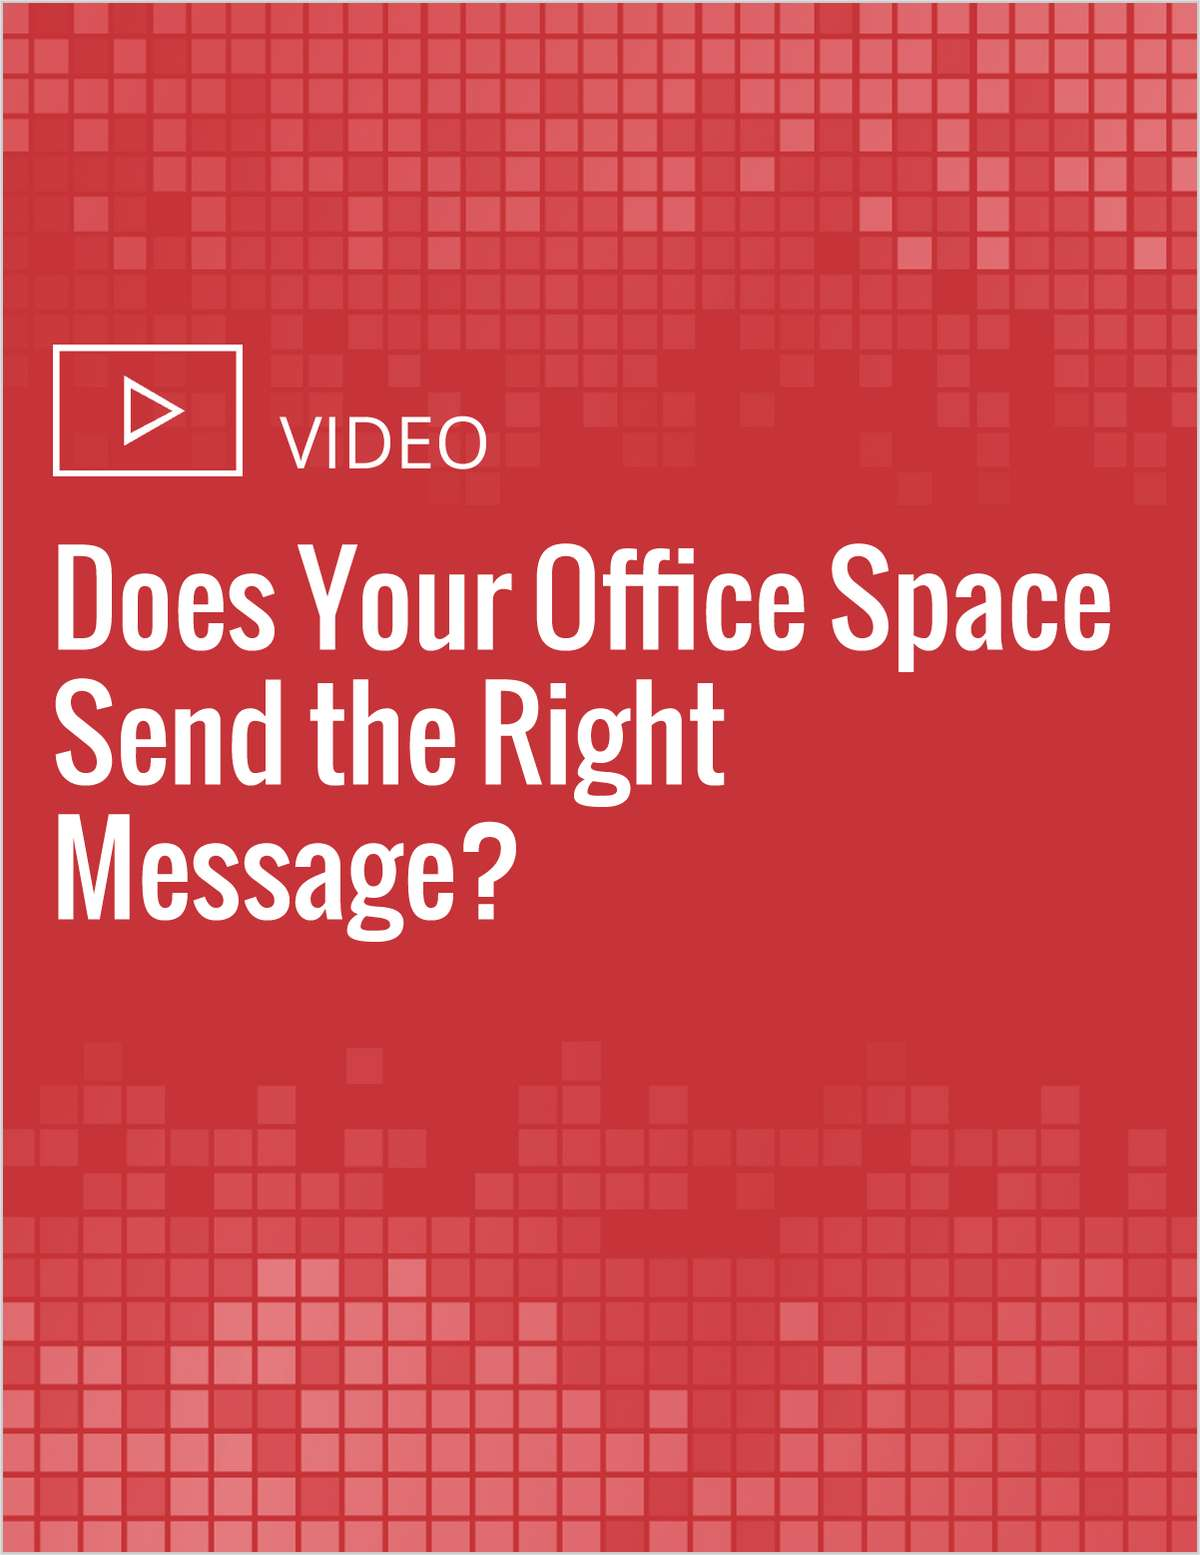 Does Your Office Space Send the Right Message?